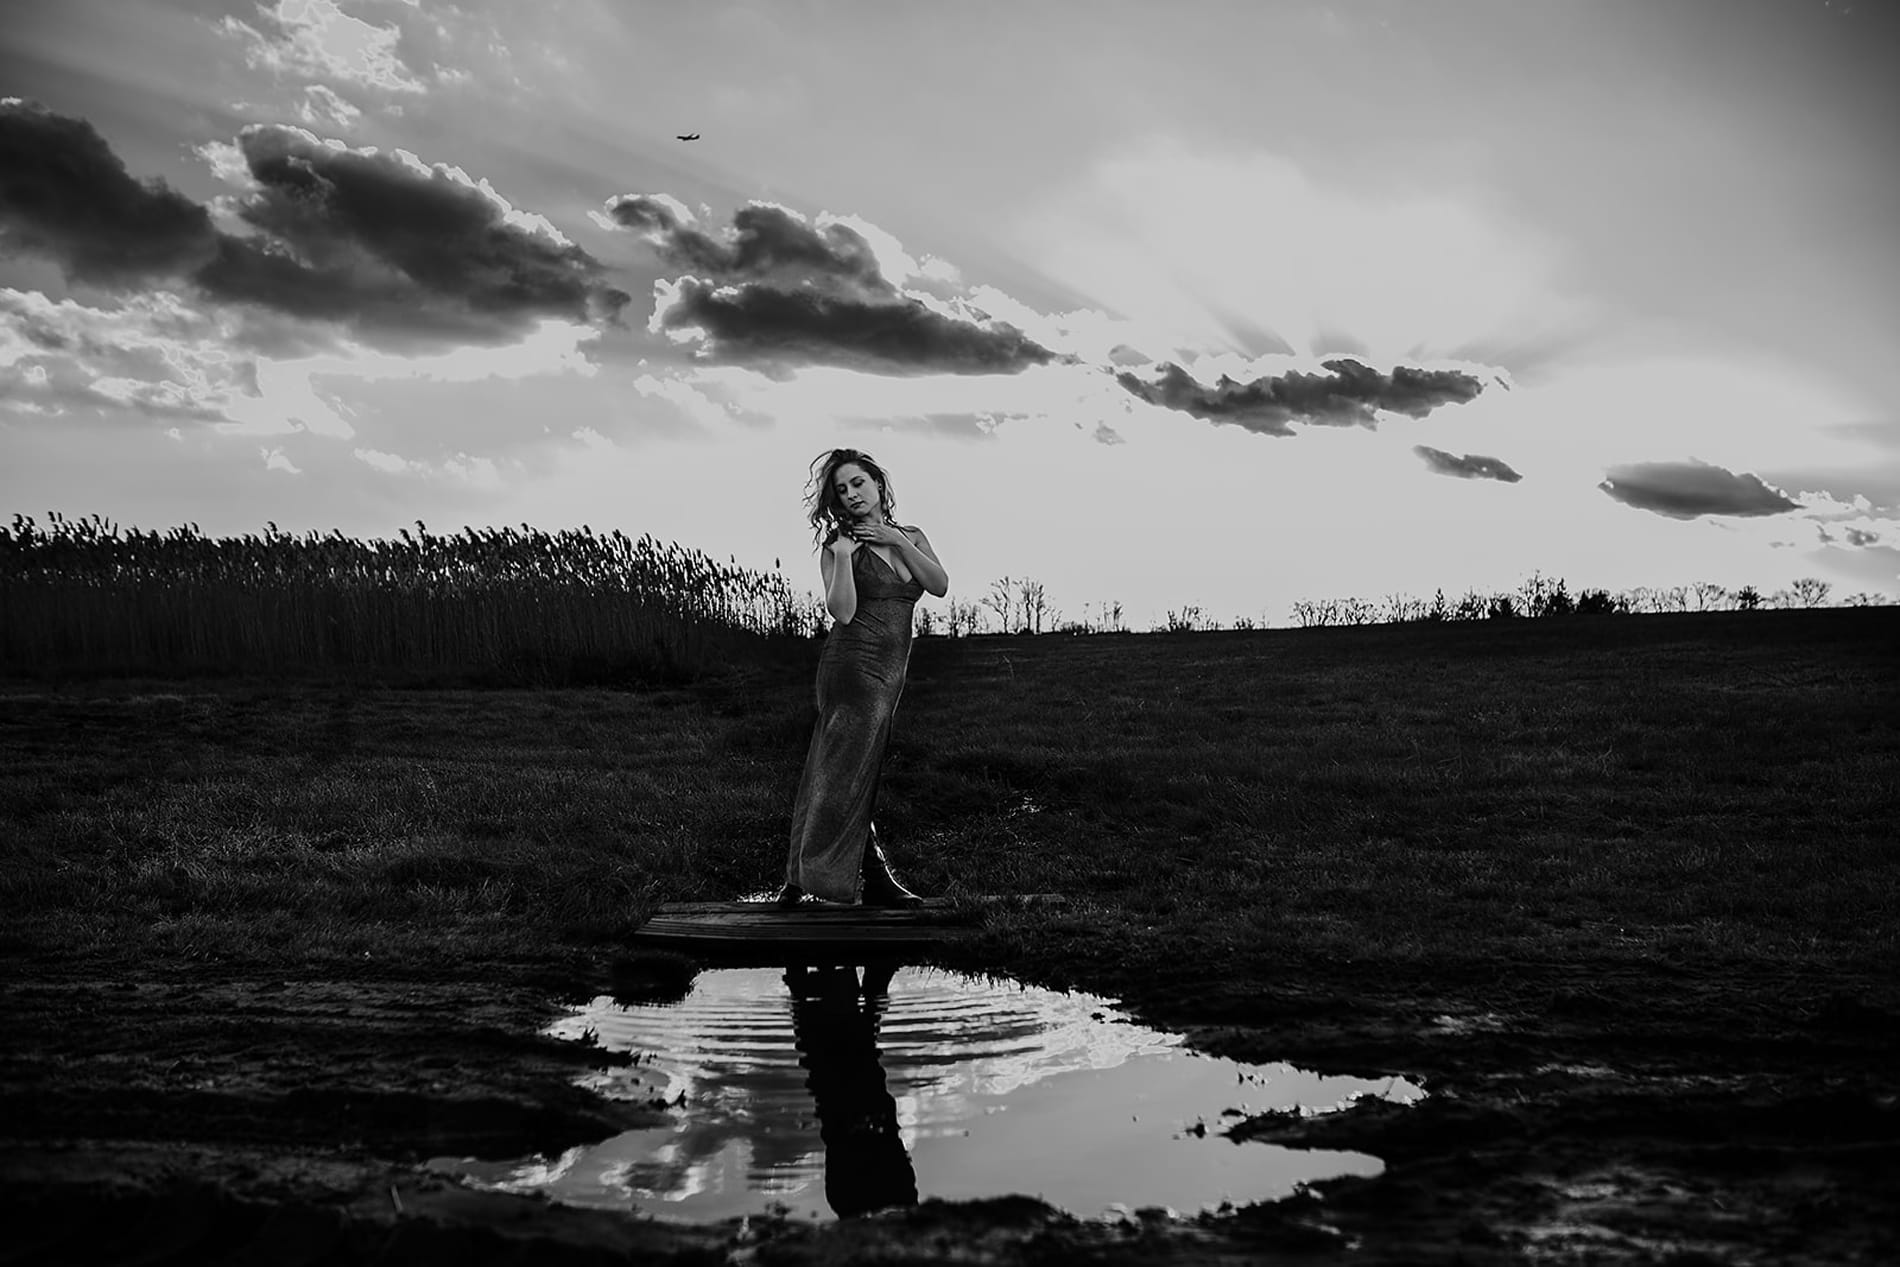 Wedding Photographer, Woman in a dress stands near water puddles in an open field